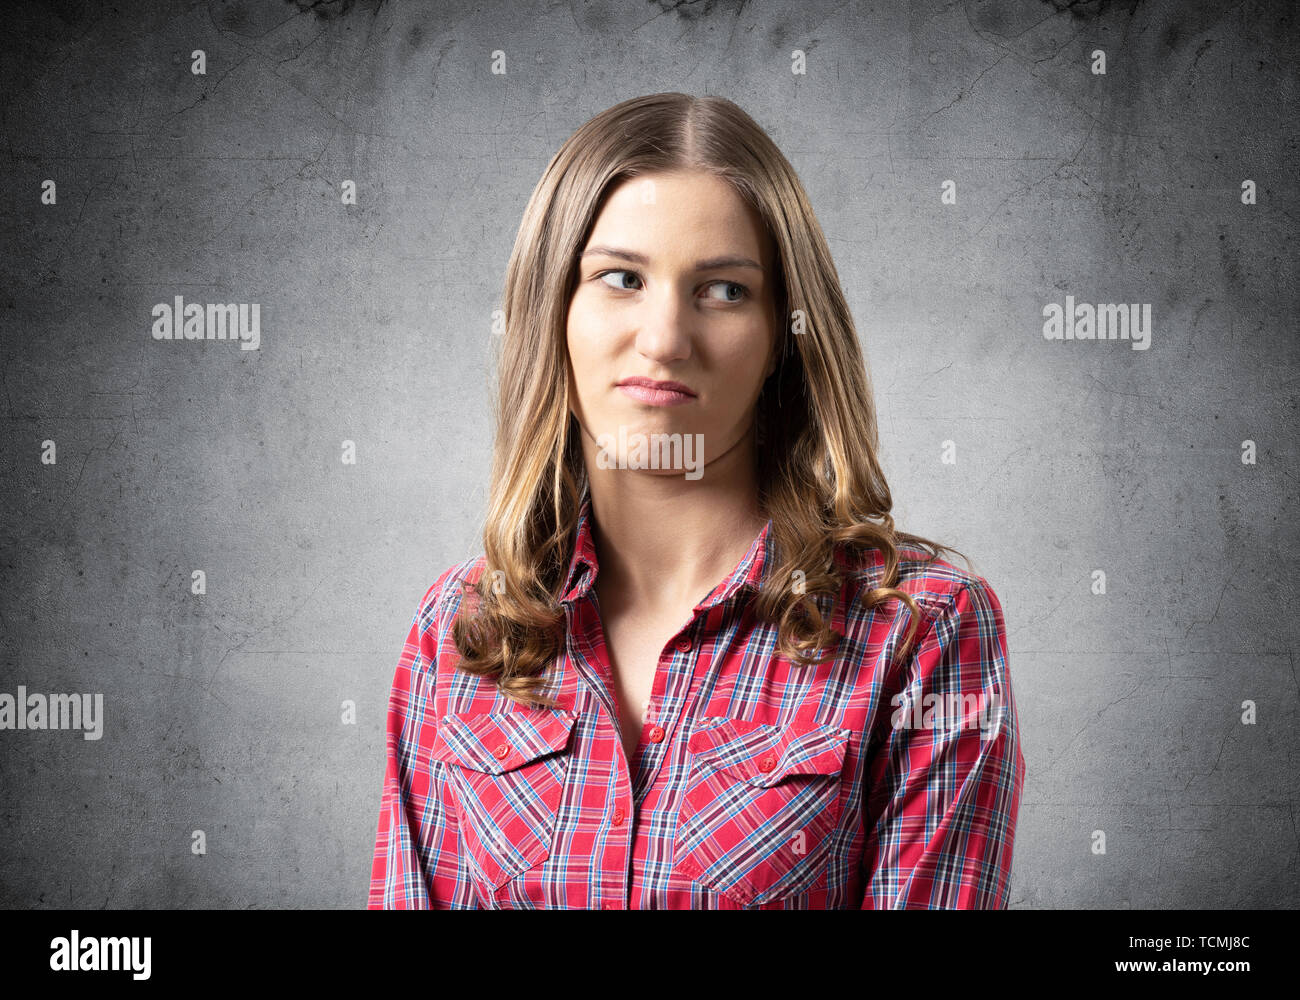 Distrustful brown haired woman looks suspiciously - Stock Image